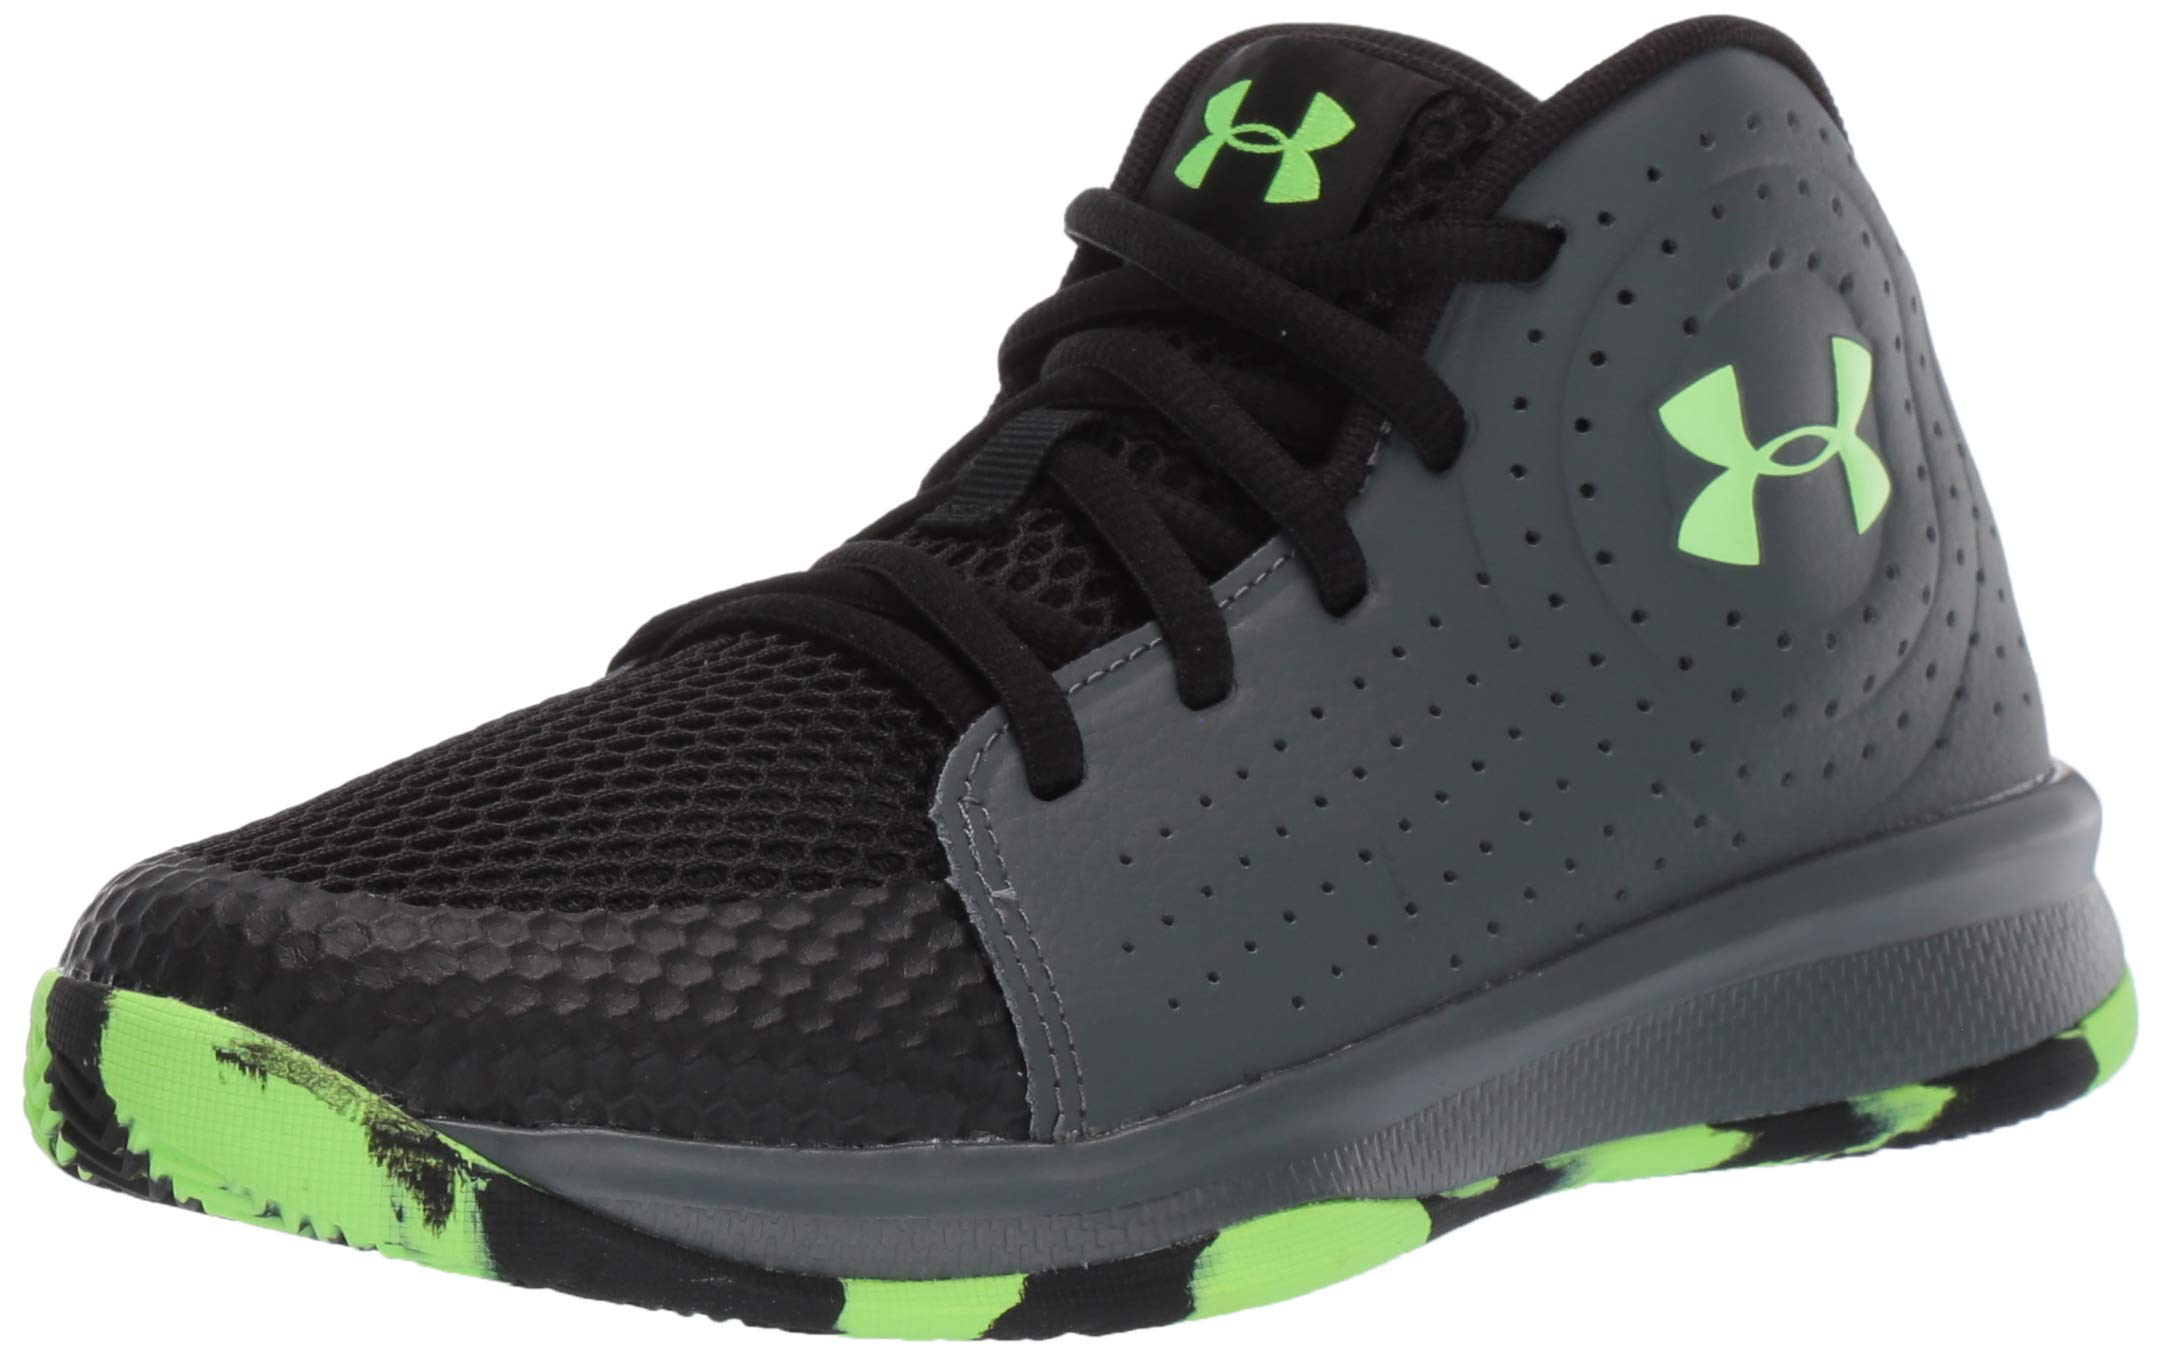 Under Armour Unisex Pre School Jet 2019 Basketball Shoe, Pitch Gray (100)/Black, 1 M US Little Kid